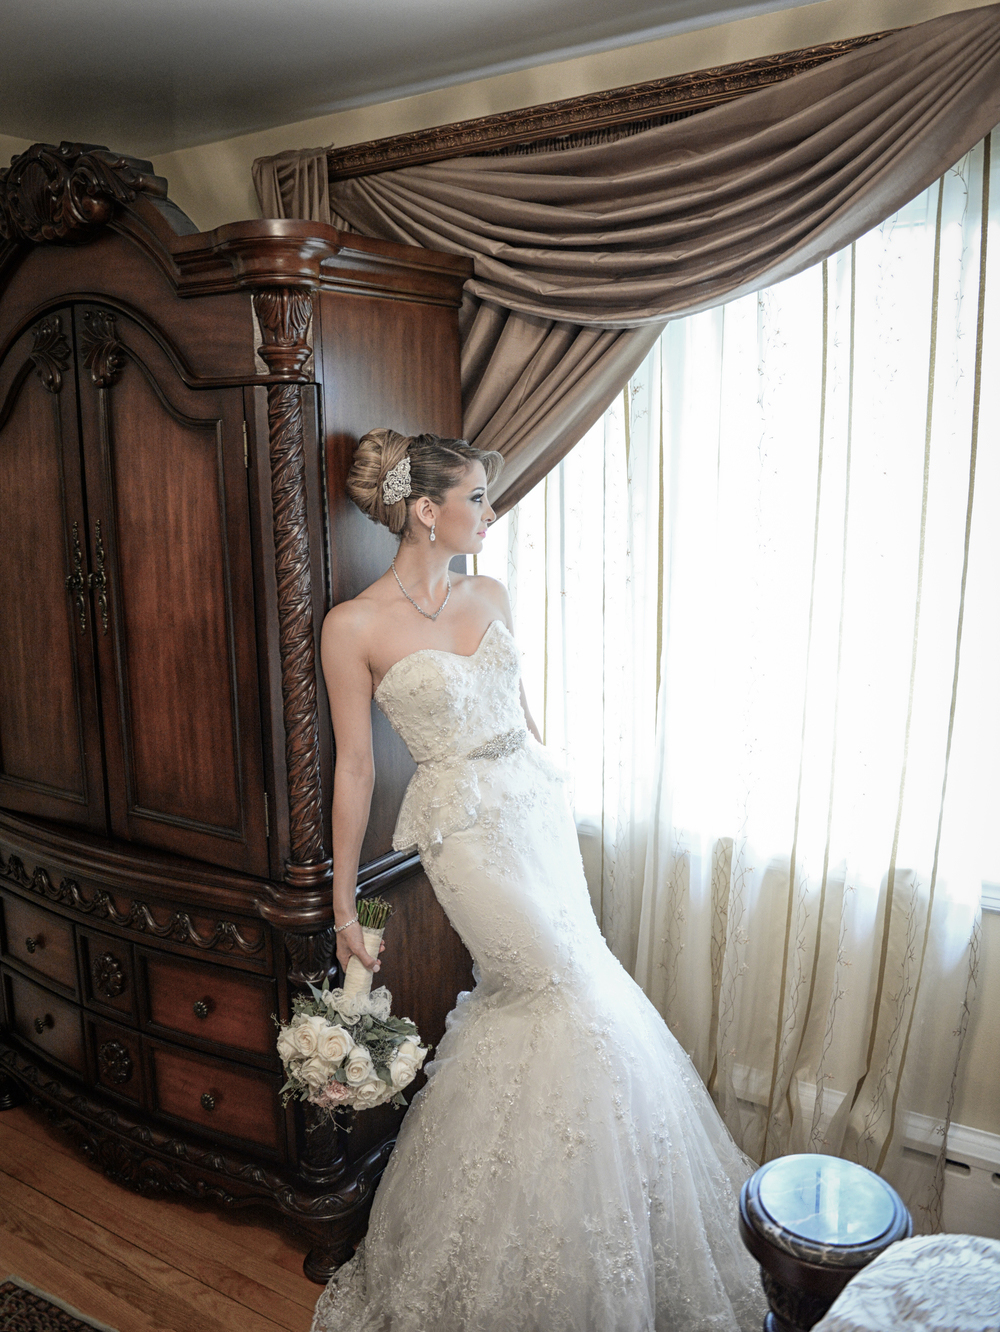 bride holding bouquet leaning against wooden furniture by window in monroe, la